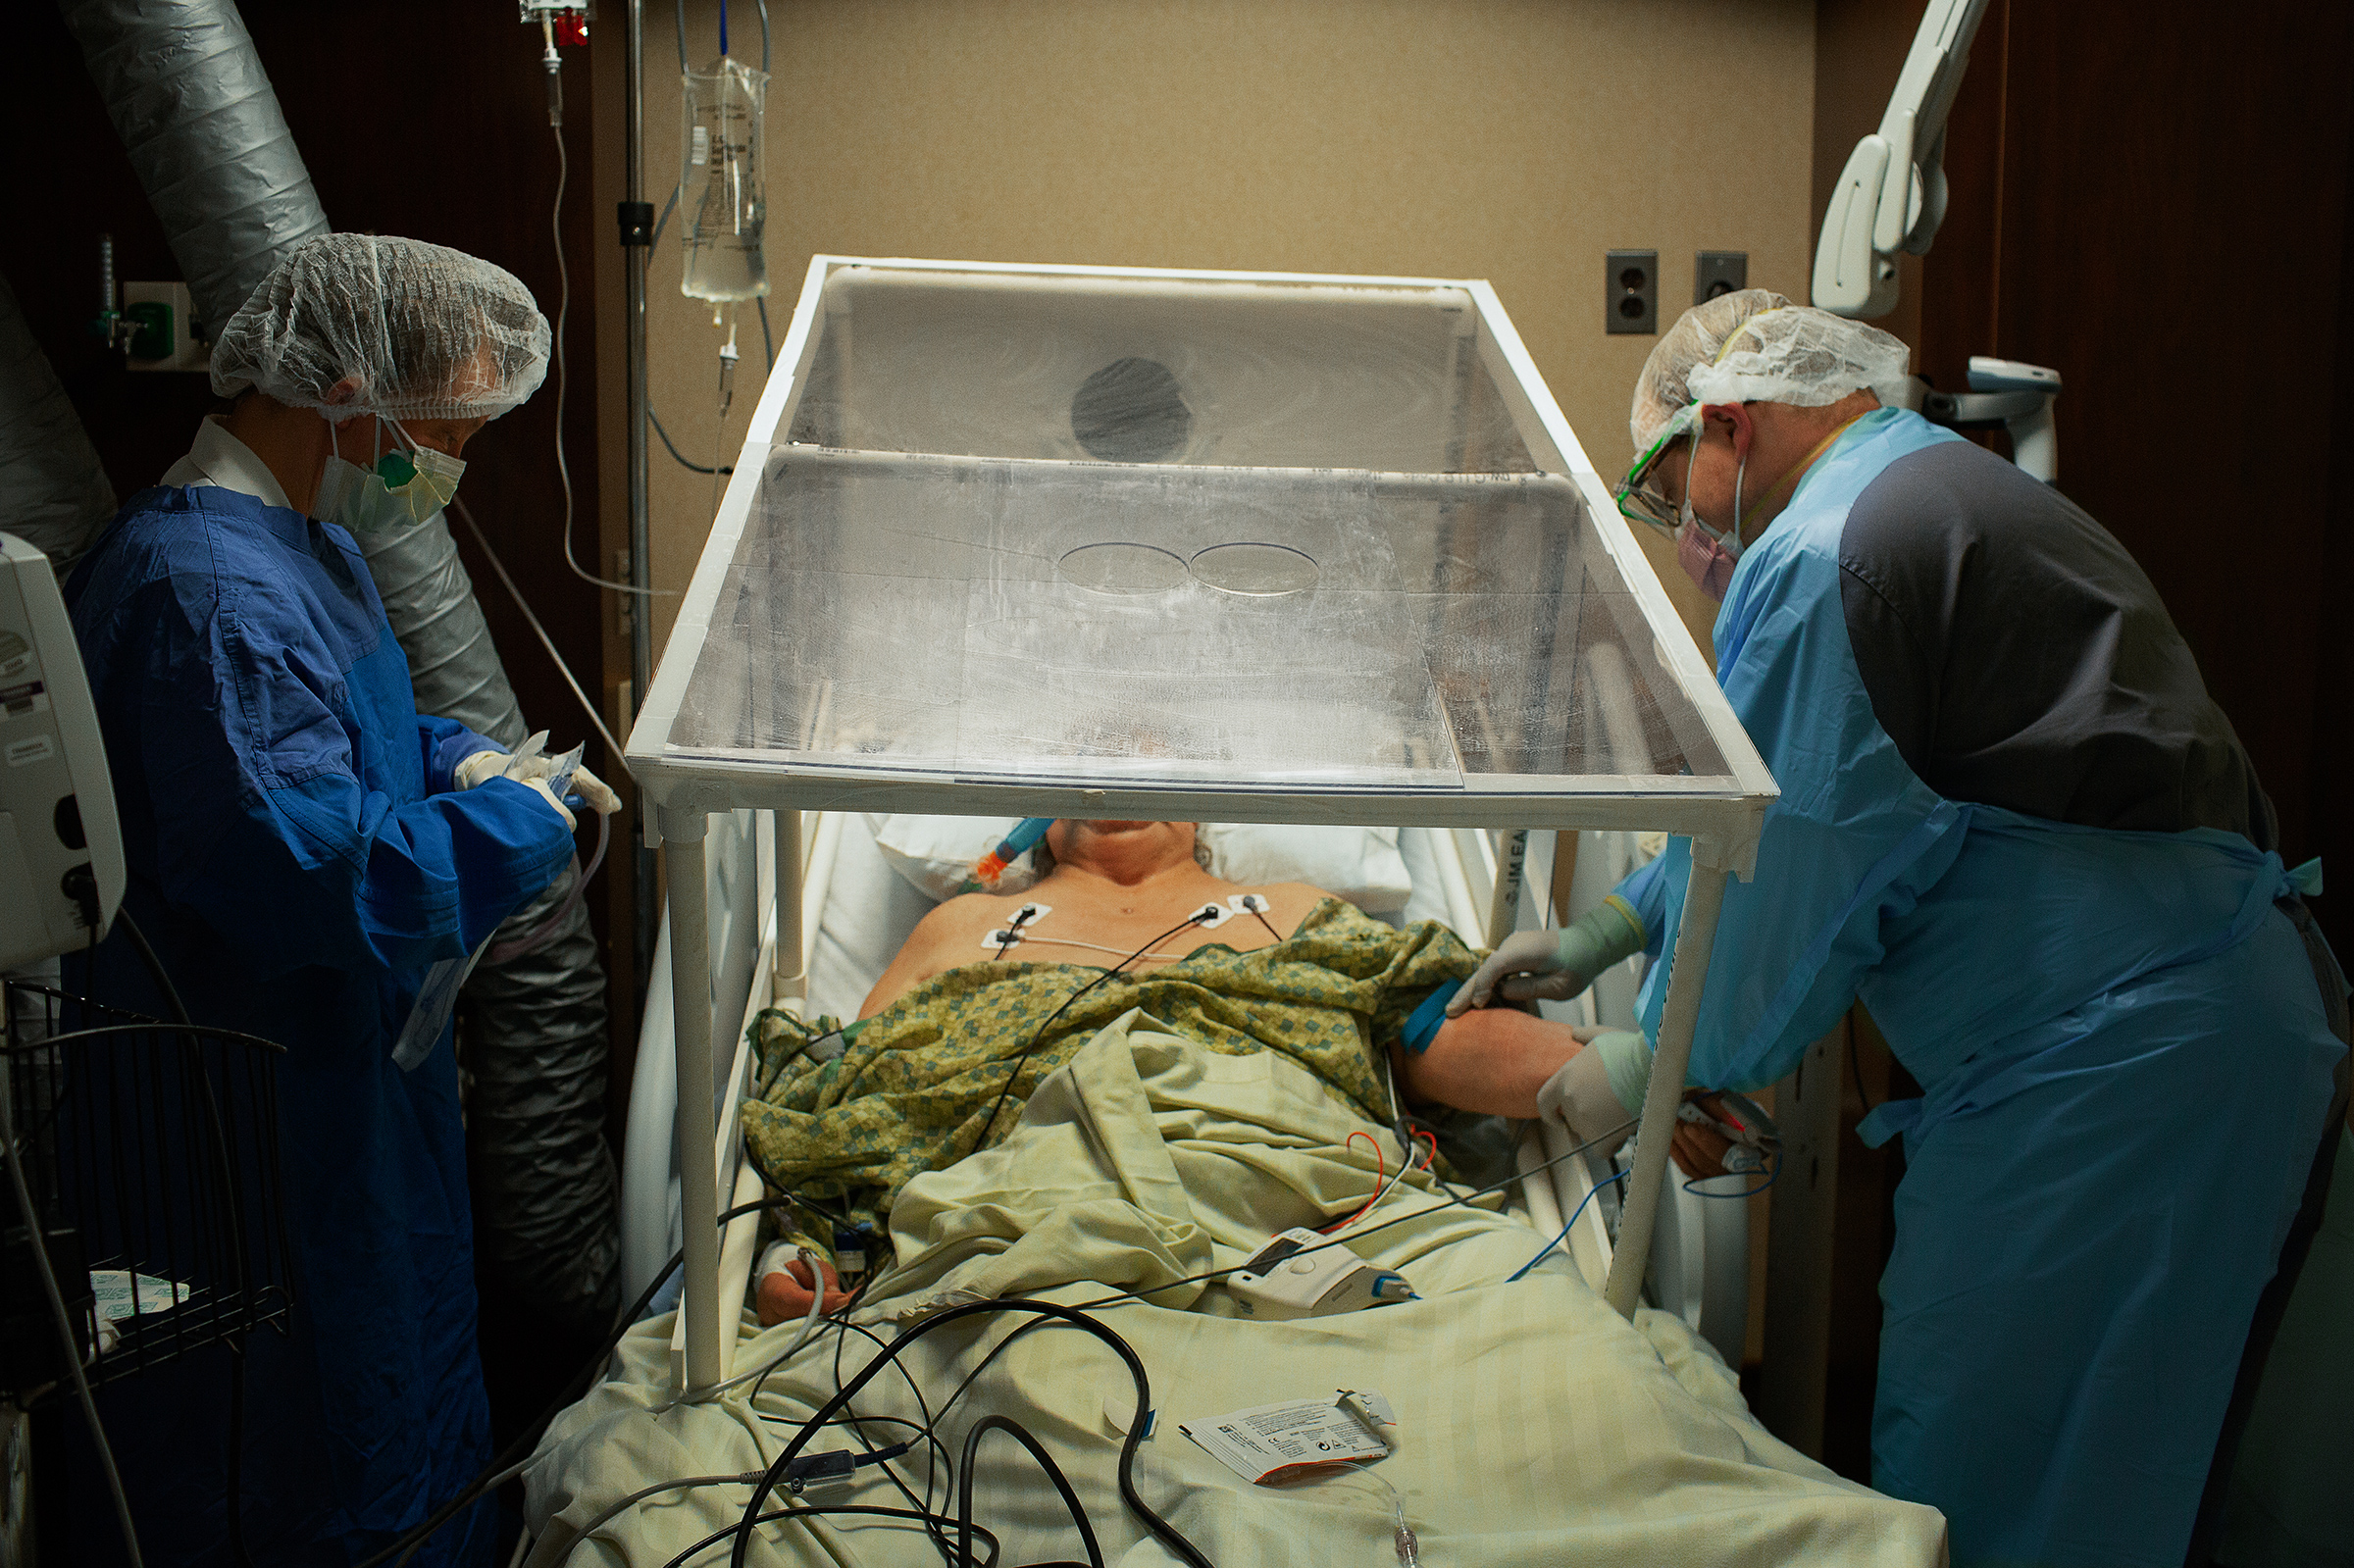 A COVID-19 patient is prepared for intubation by the anesthesiologist at Holy Name Medical Center in Teaneck, N.J., on March 31. The plastic tent is so the virus isn't spread while transporting the patient between units.